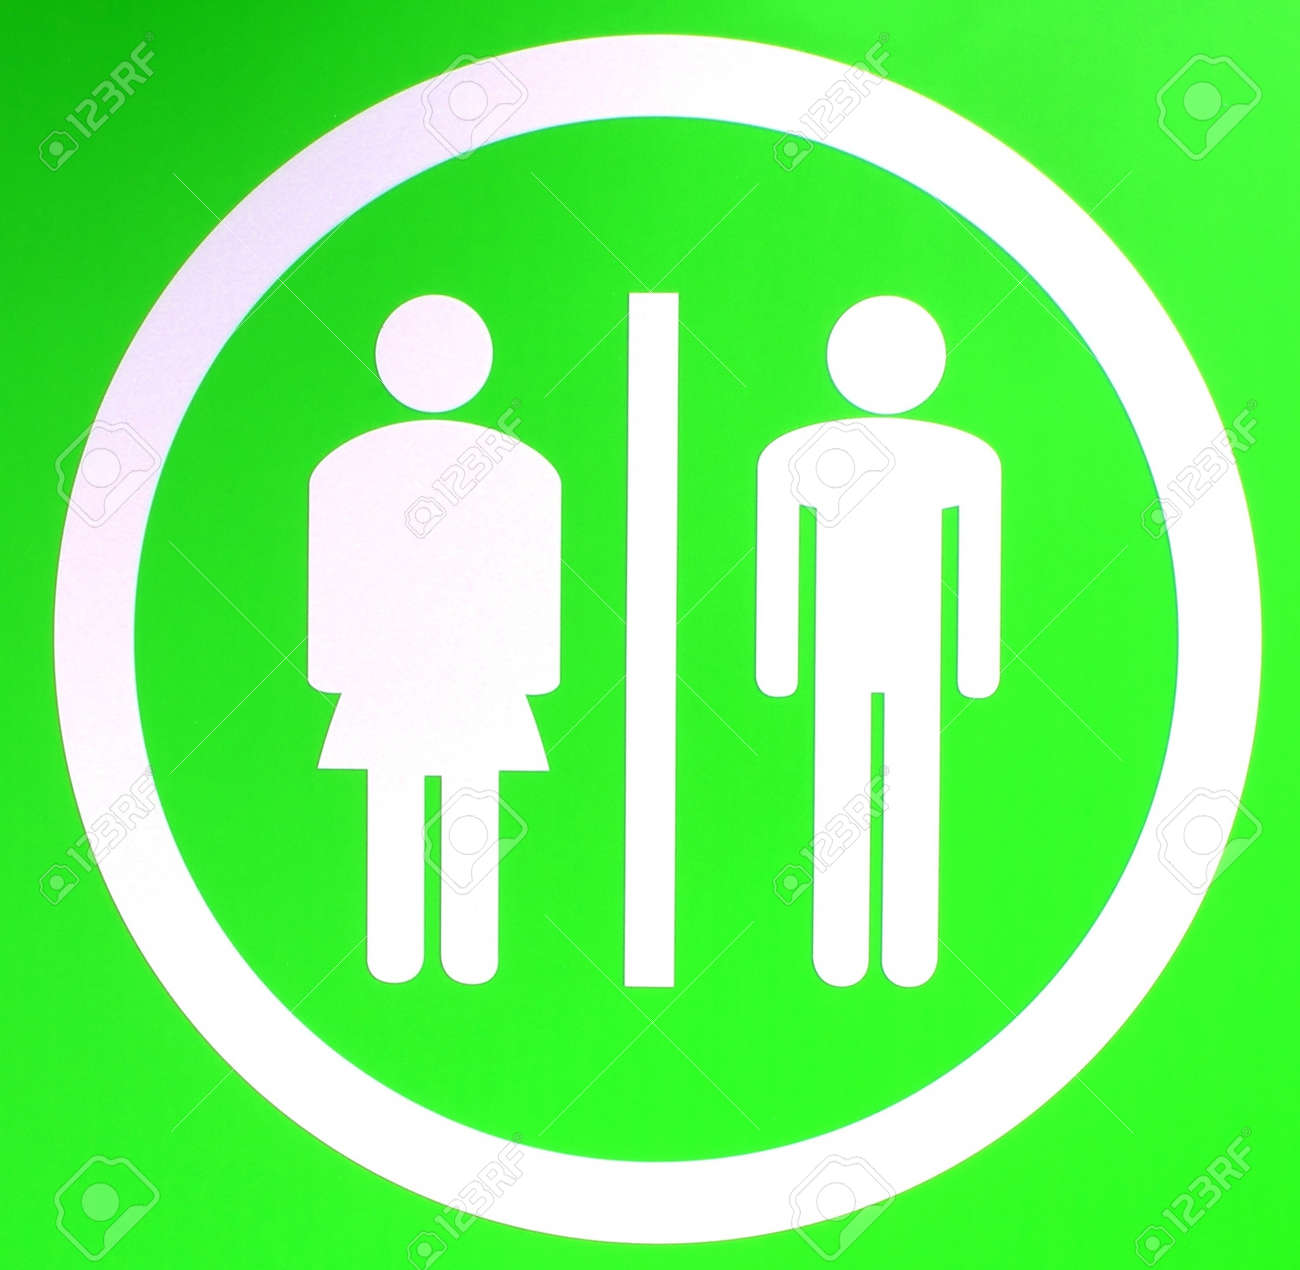 A Toilet Sign For Ladies And Gents Stock Photo Picture And Royalty - Ladies bathroom sign